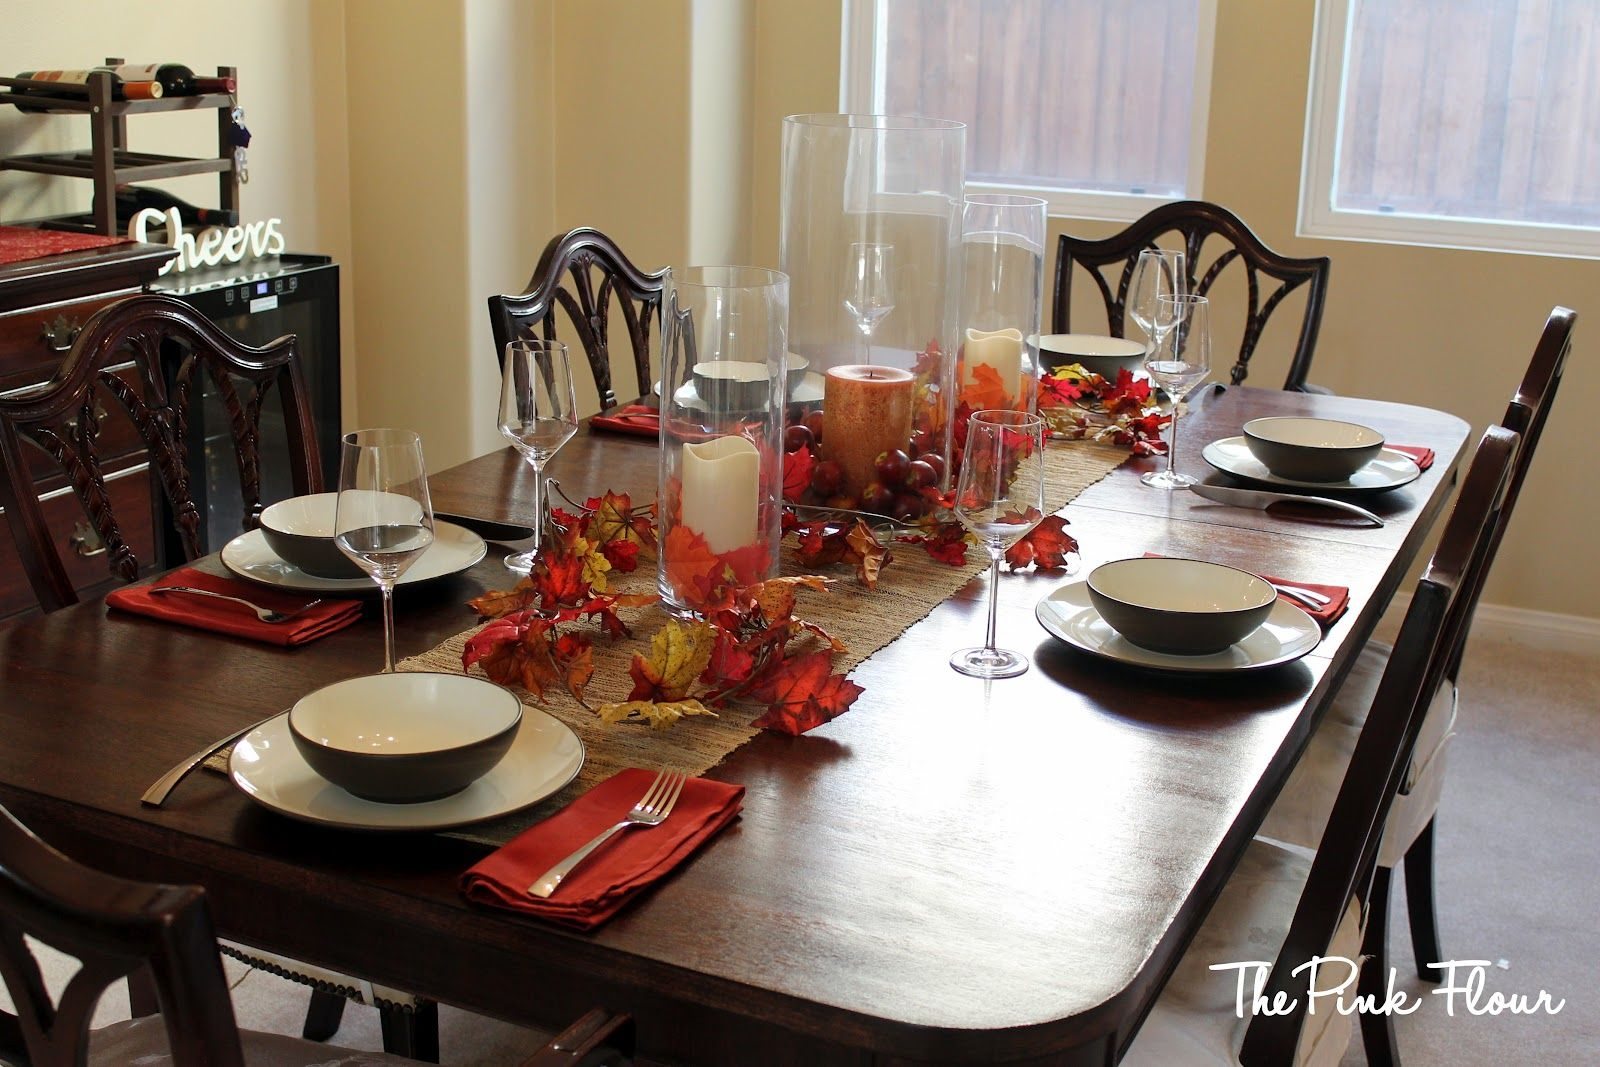 Fall Dining Room Table Decorating Ideas 1600x1067 In 3212kb Dining Table With Fall Decoration обеденные столы из дерева столы столовая элегантный обед